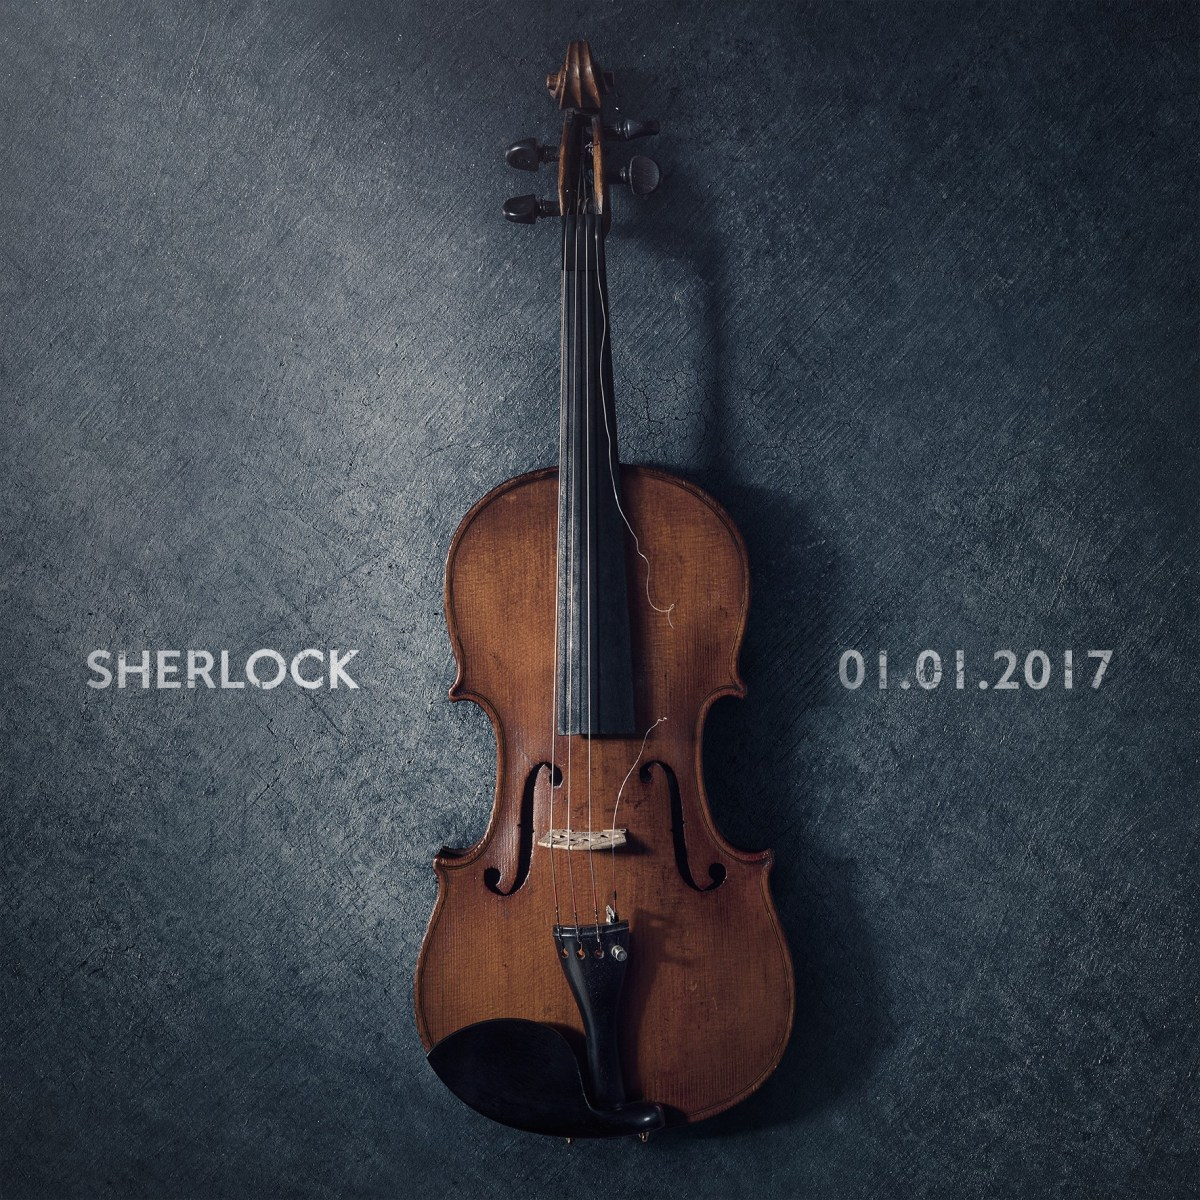 Sherlock Return Date Announced